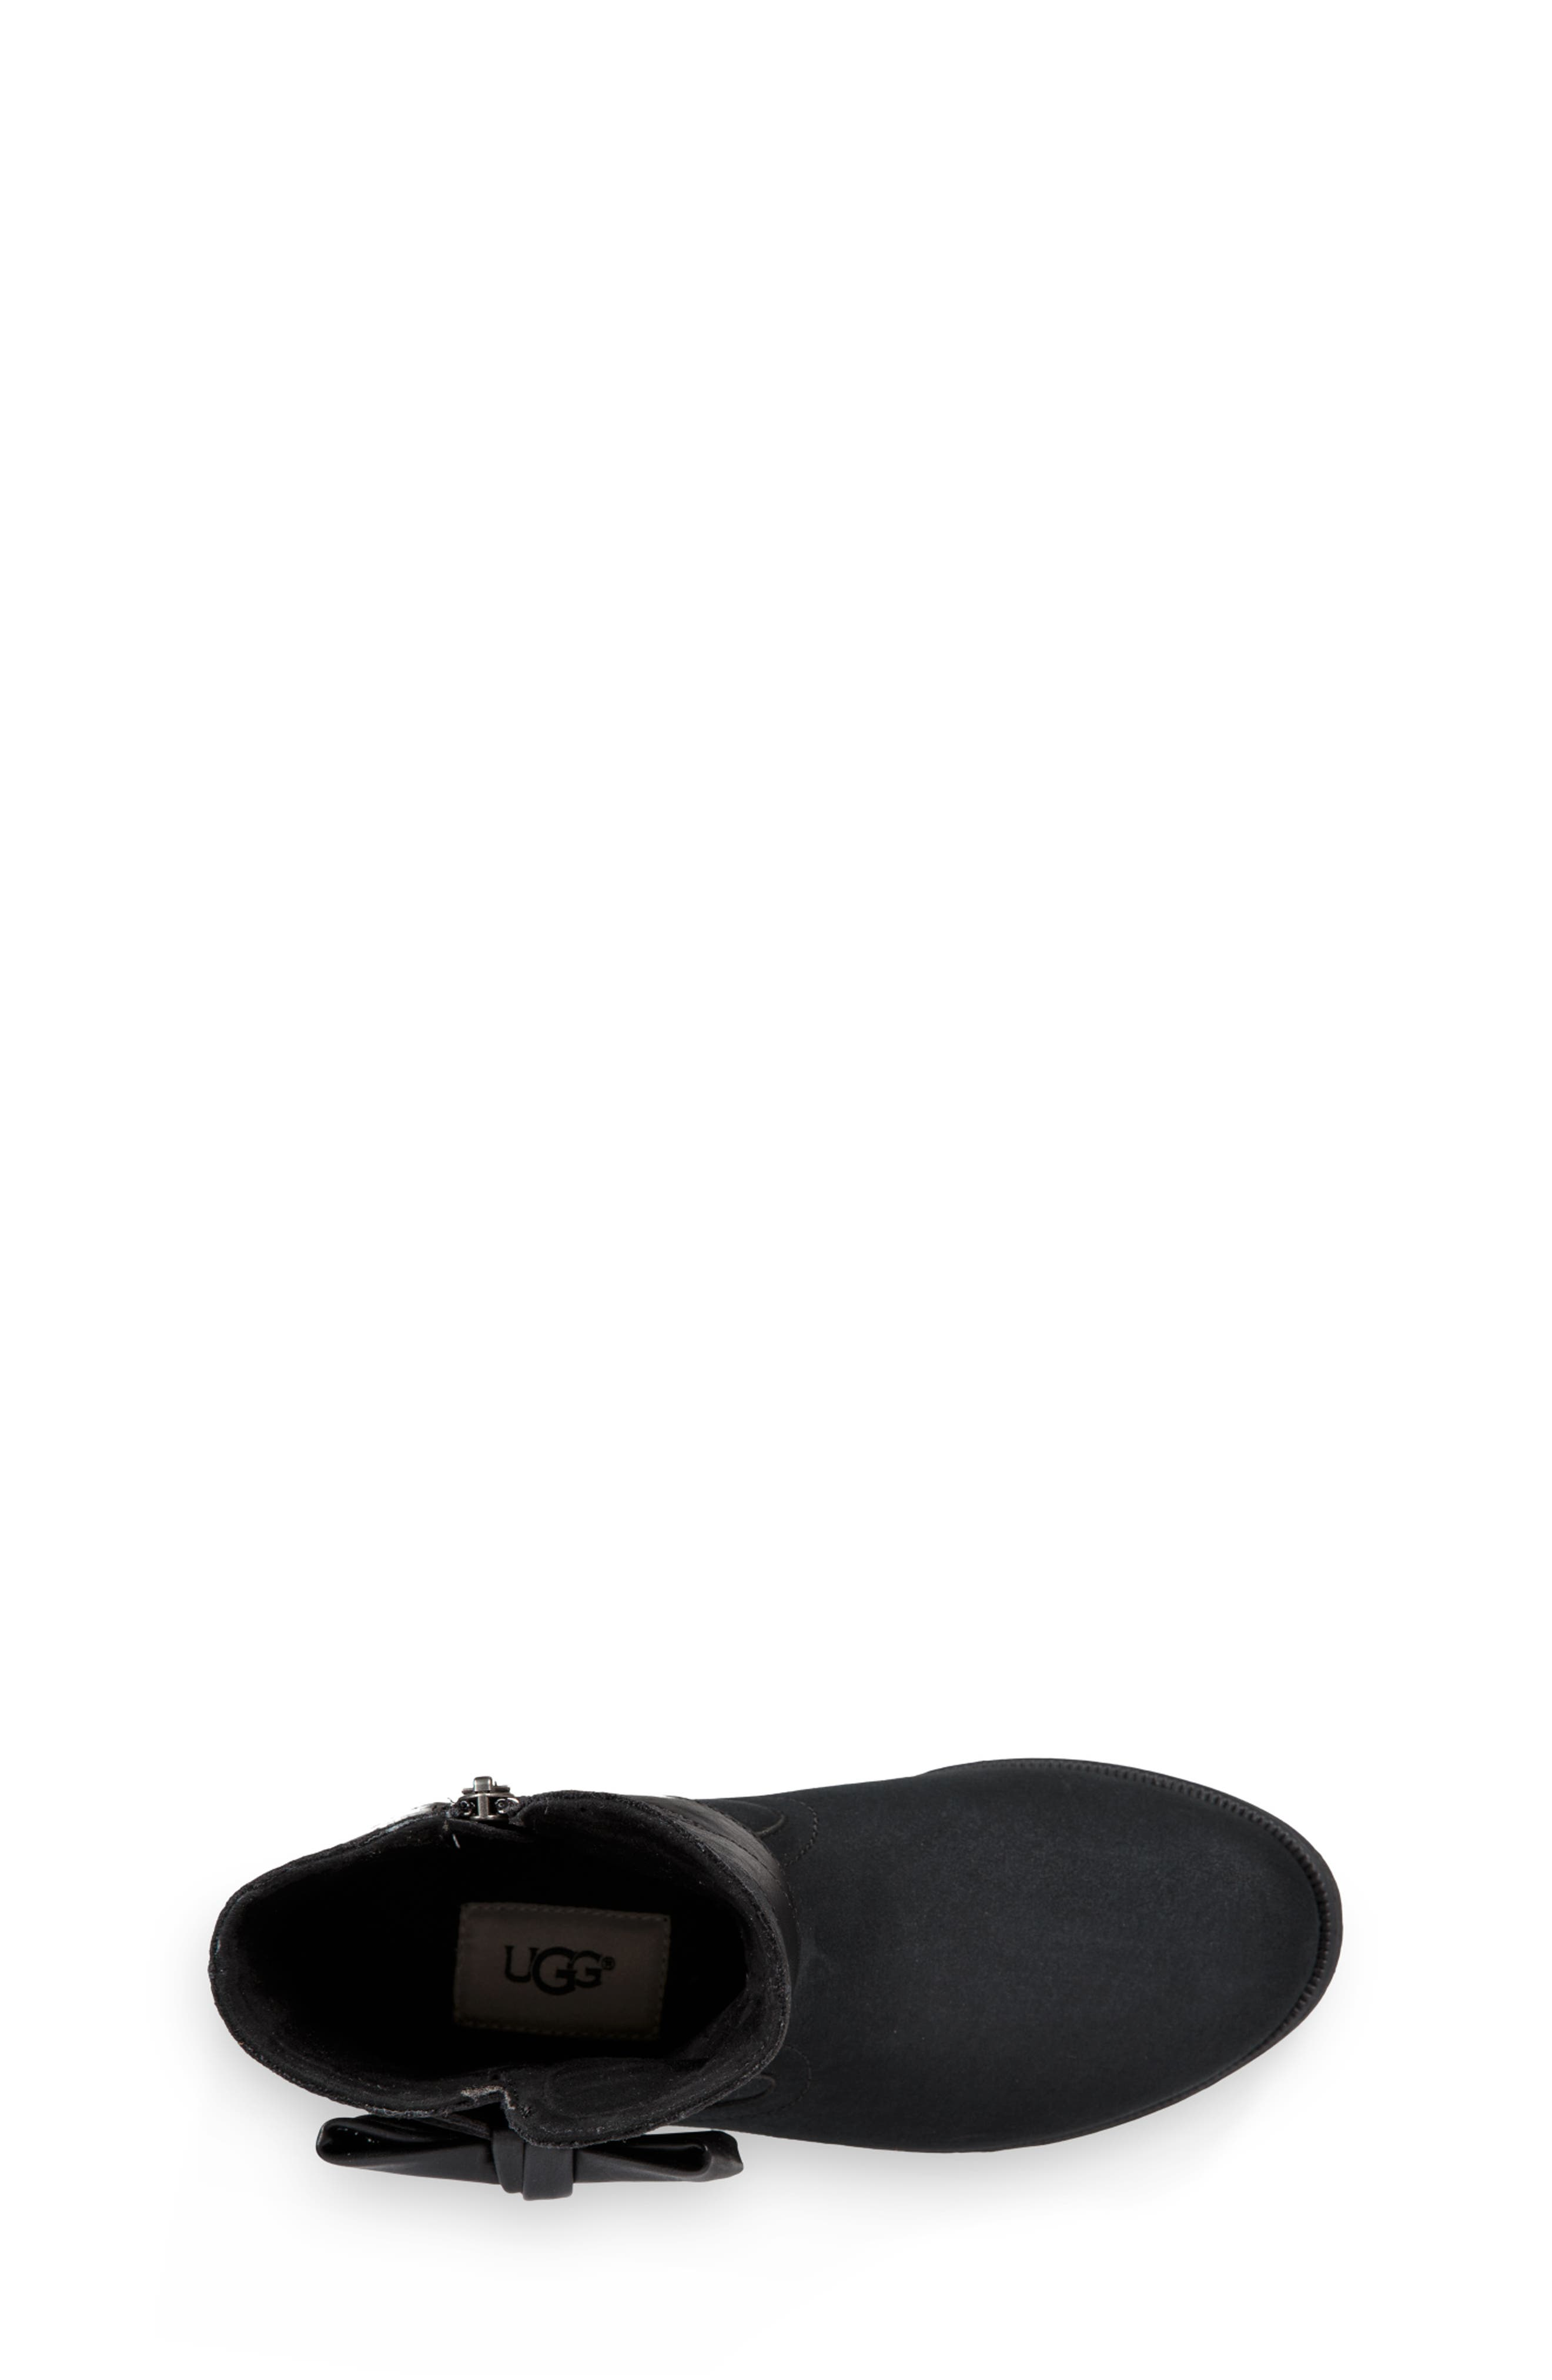 UGG<SUP>®</SUP>, UGG Joanie Bow Boot, Alternate thumbnail 4, color, BLACK